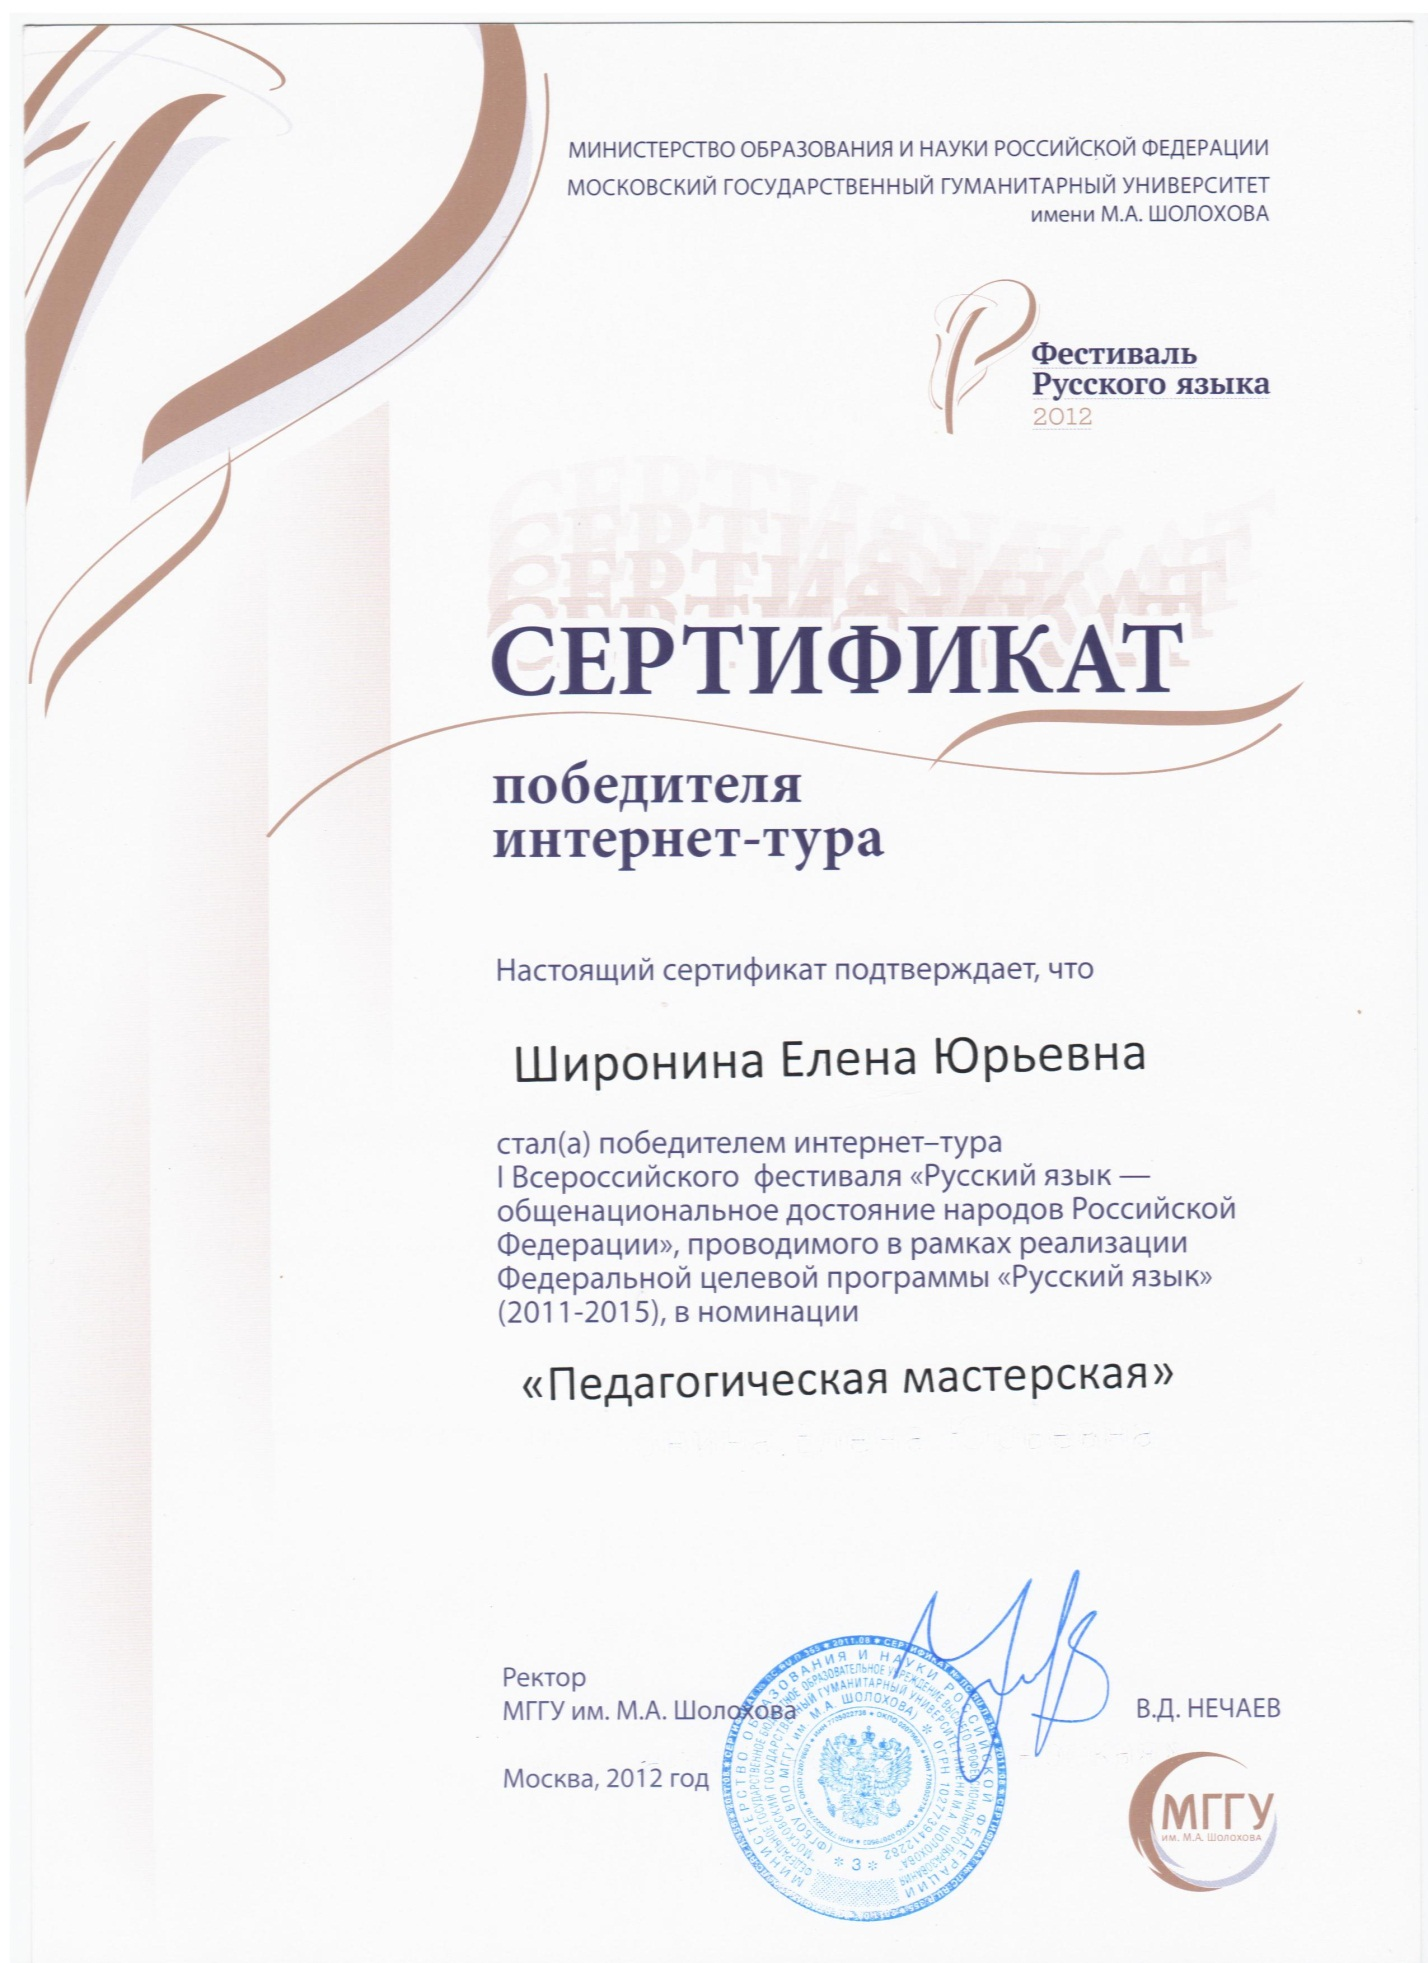 C:\Users\Елена\Pictures\img-160313124617-001.jpg